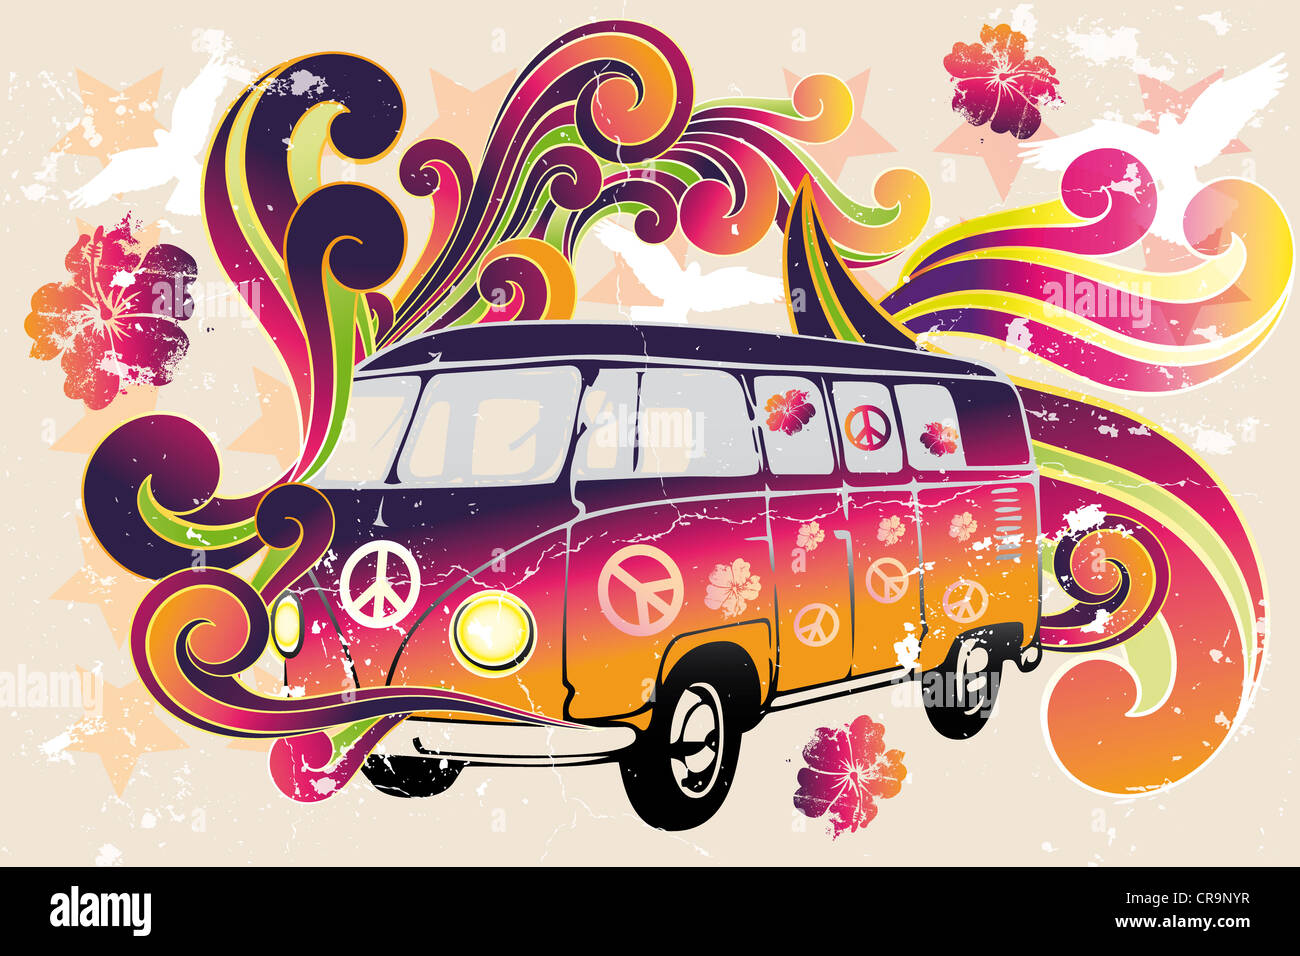 Retro van - flower power - van with colorful swirls, doves, peace signs and hibiscus as a vintage retro poster - Stock Image